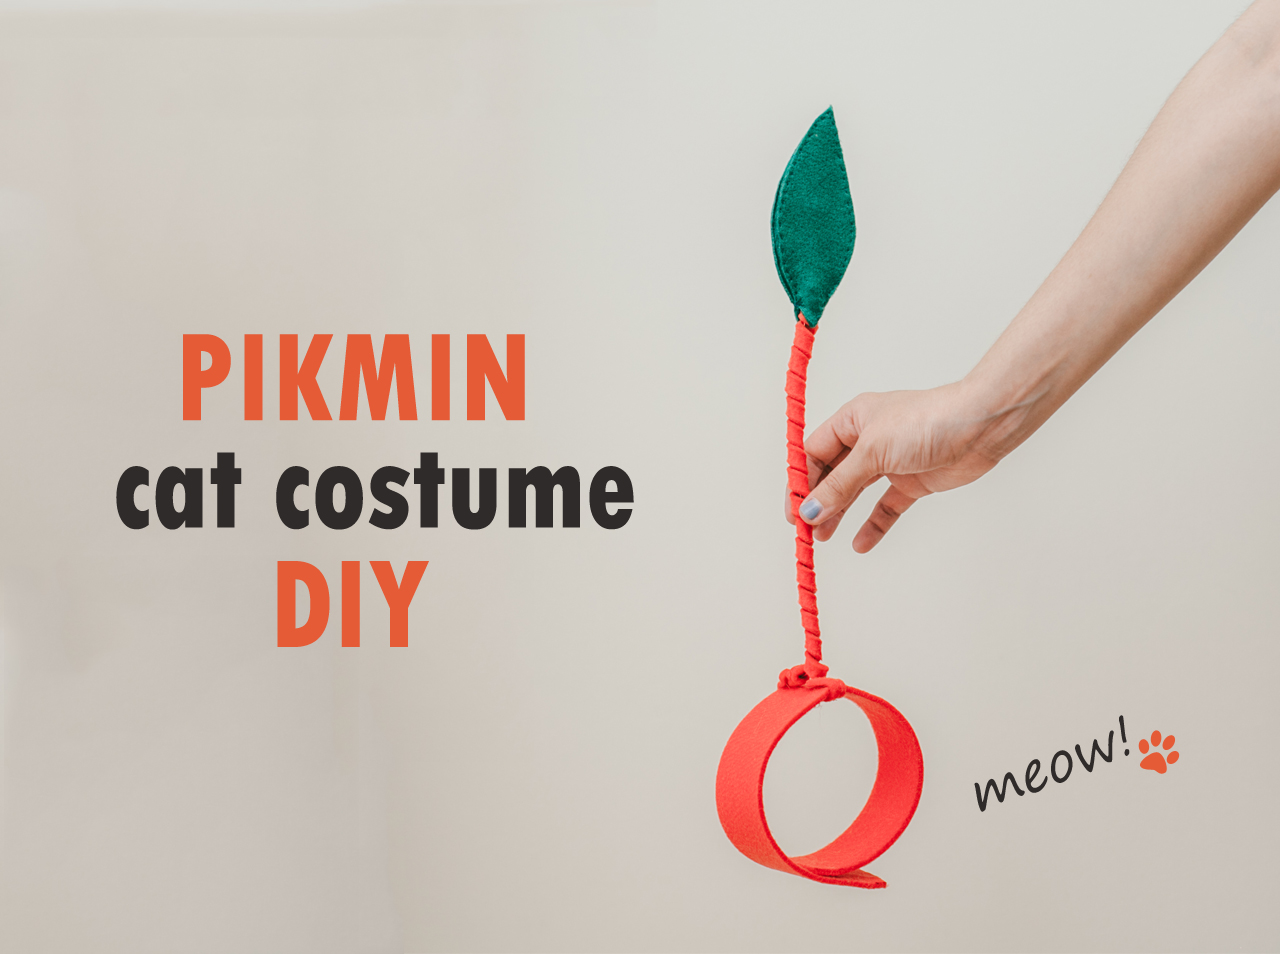 Pikmin cat costume DIY - The cat, you and us